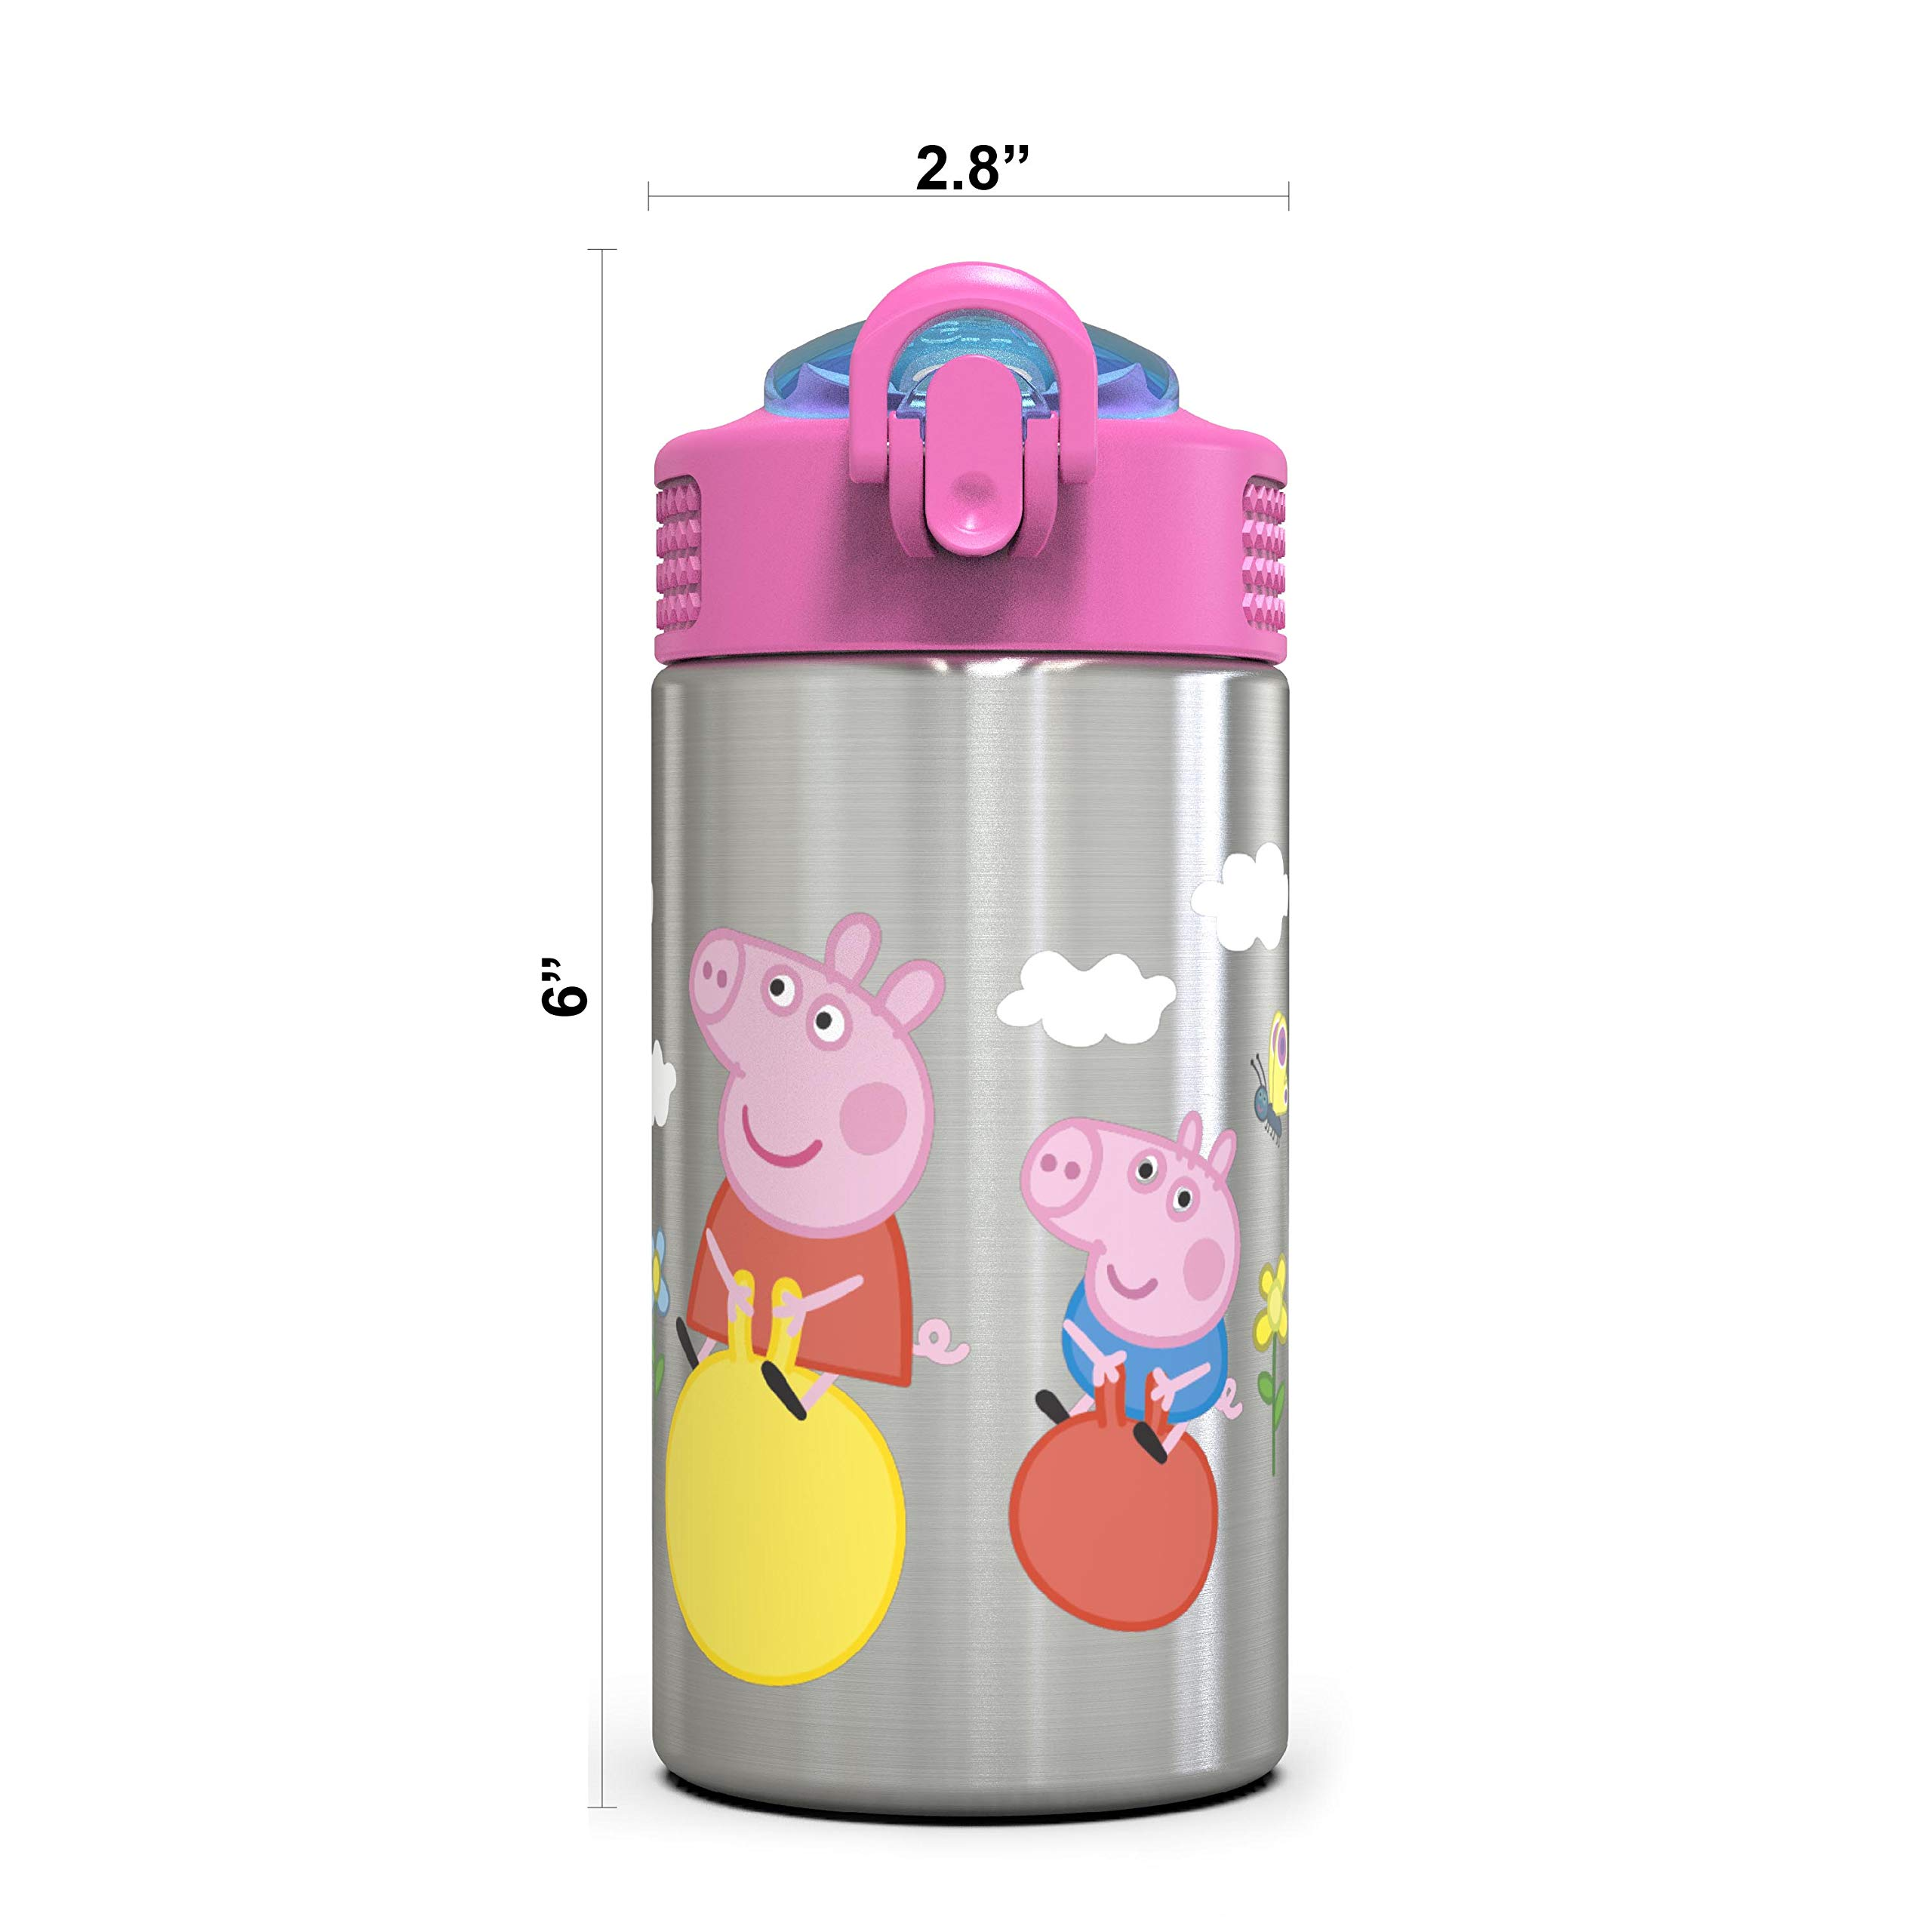 BPA Free Durable Design Peppa Pig SS Zak Designs Peppa Pig 15.5oz Stainless Steel Kids Water Bottle with Flip-up Straw Spout